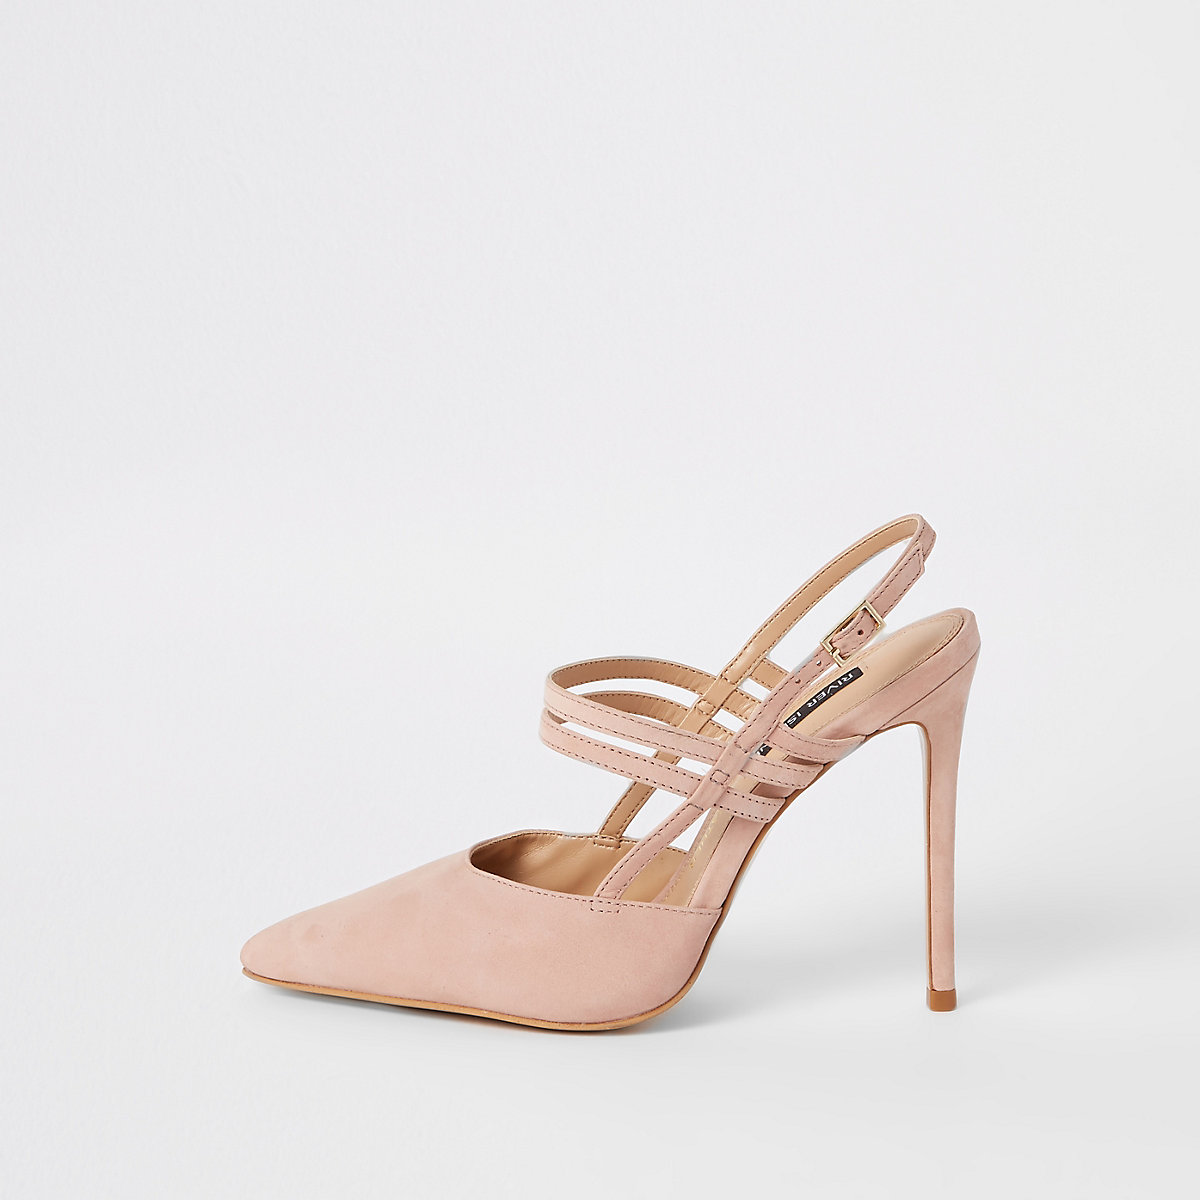 Light pink leather strappy court shoes - Shoes - Shoes   Boots - women 862072b01